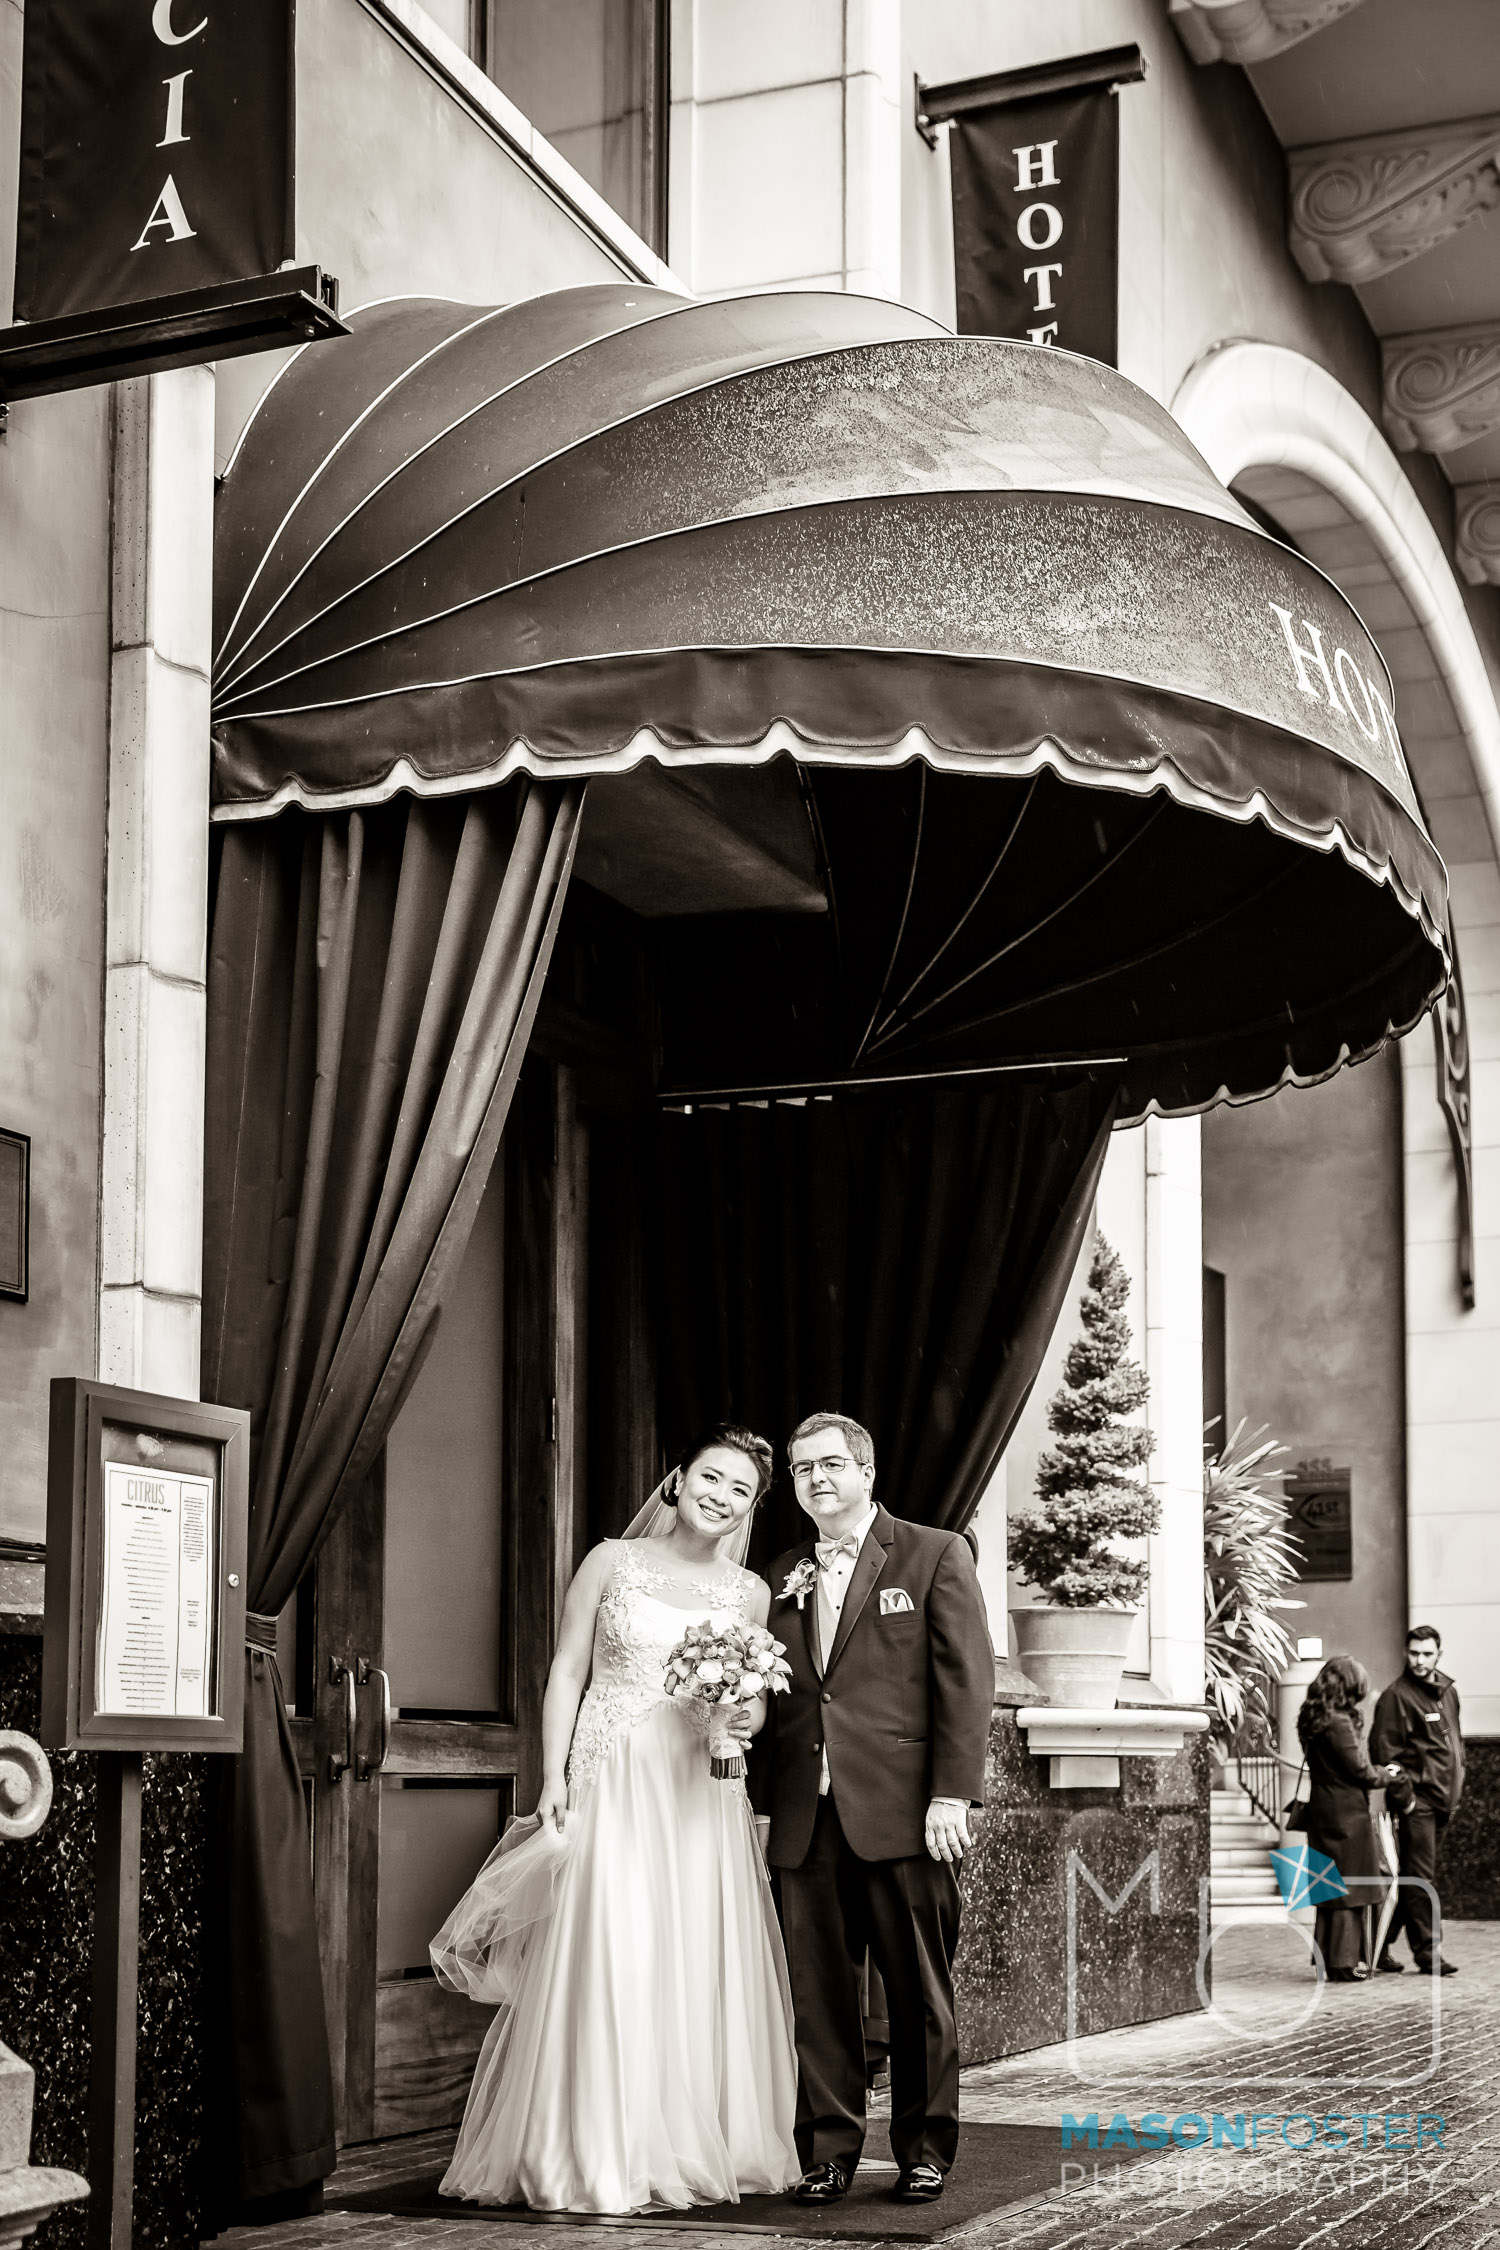 The bride and groom at the Hotel Valencia.